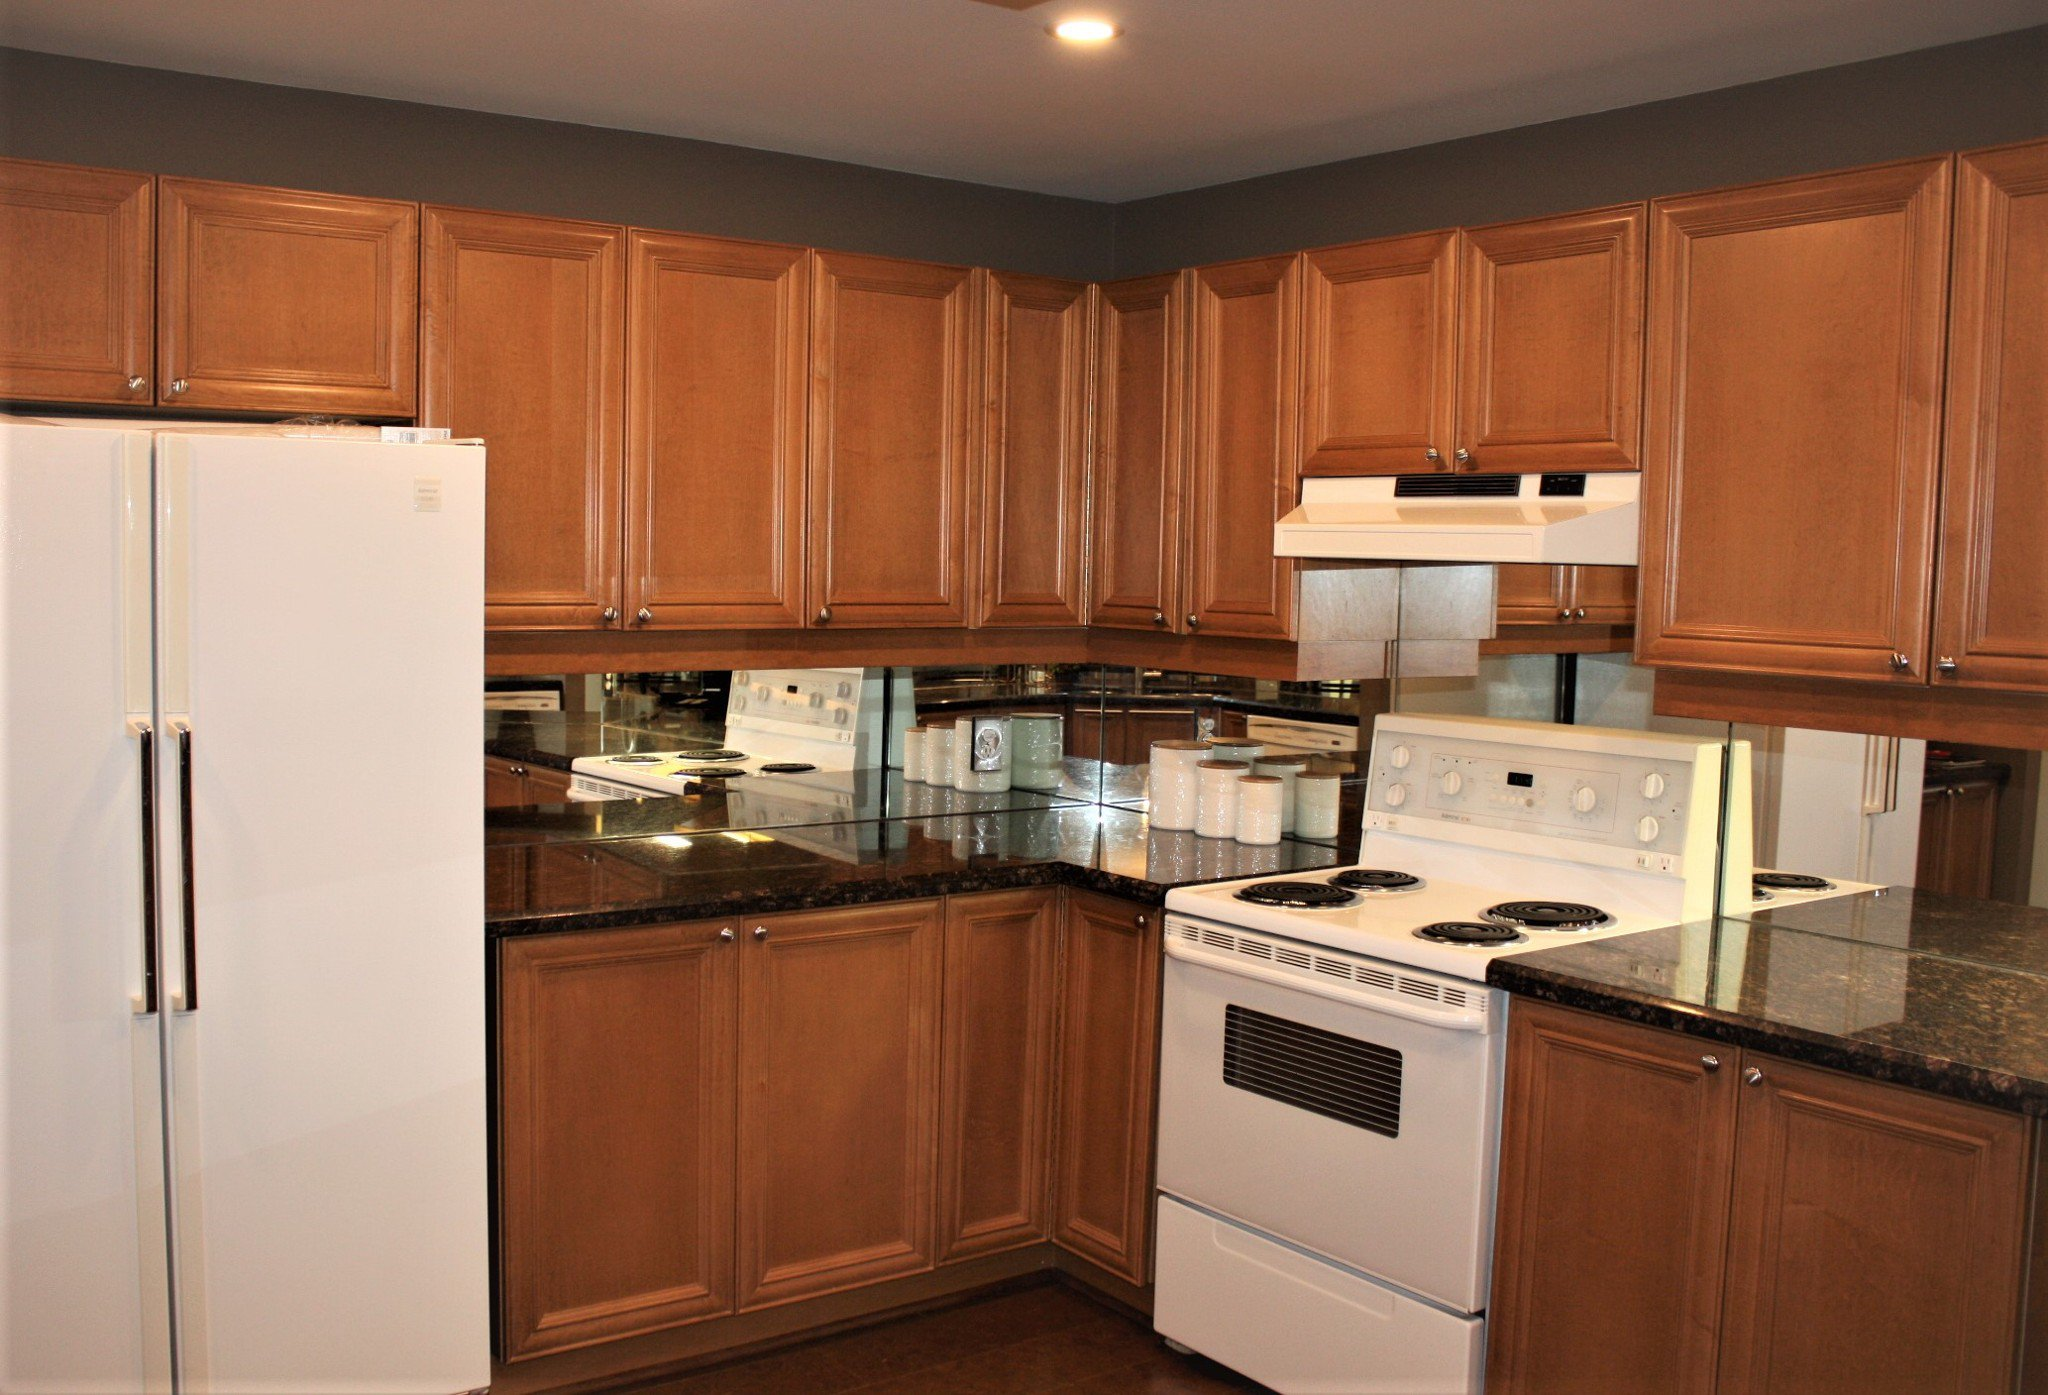 Photo 7: Photos: 113 245 Elgin Street in Cobourg: Residential Attached for sale : MLS®# 219780